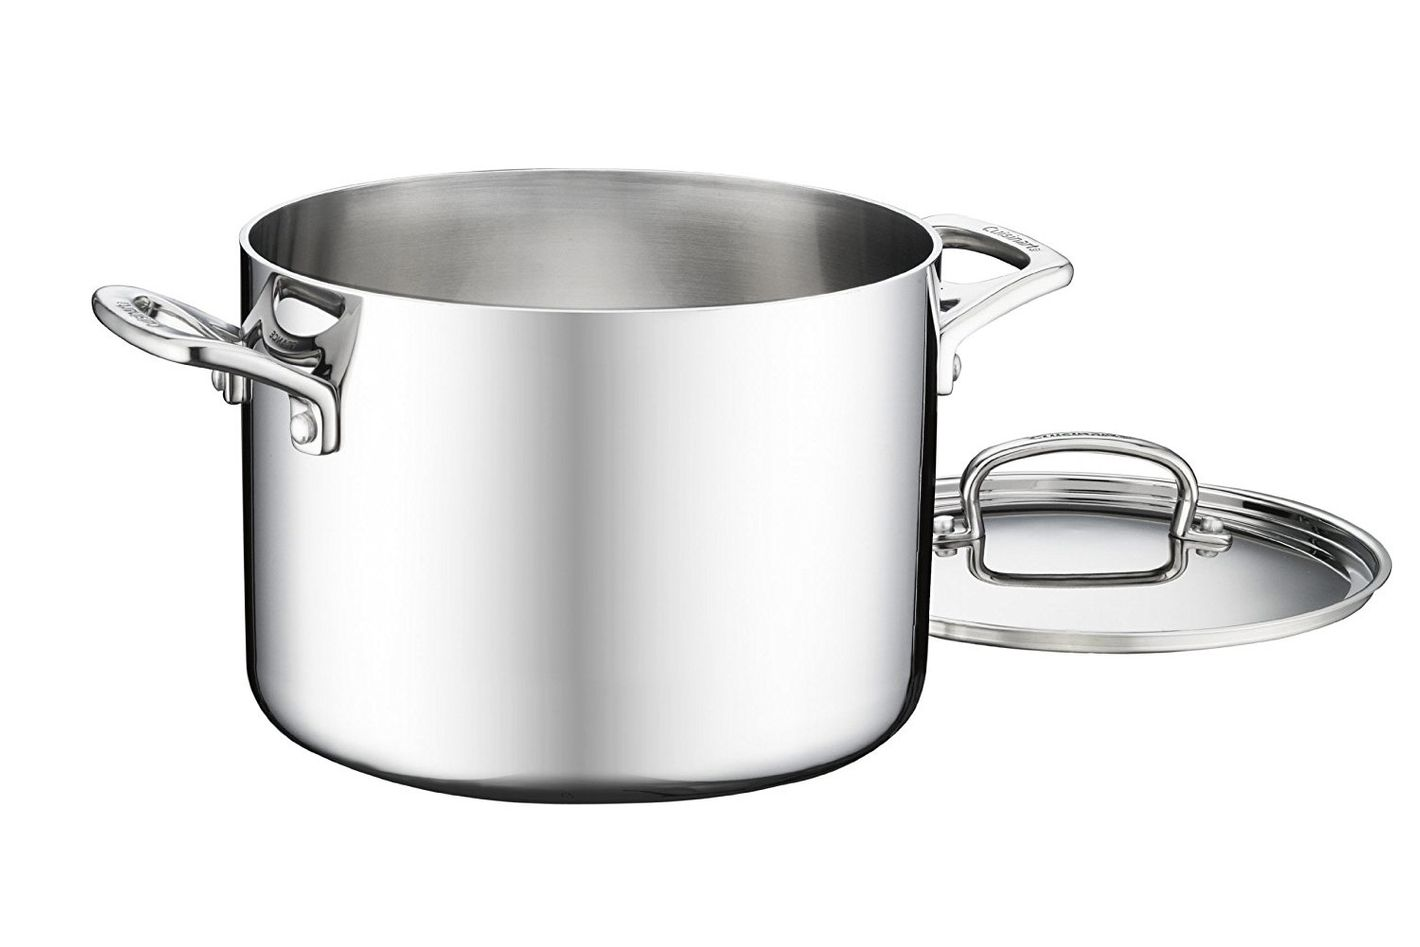 Cuisinart FCT66-22 French Classic Tri-Ply Stainless 6-Quart Stockpot with Cover